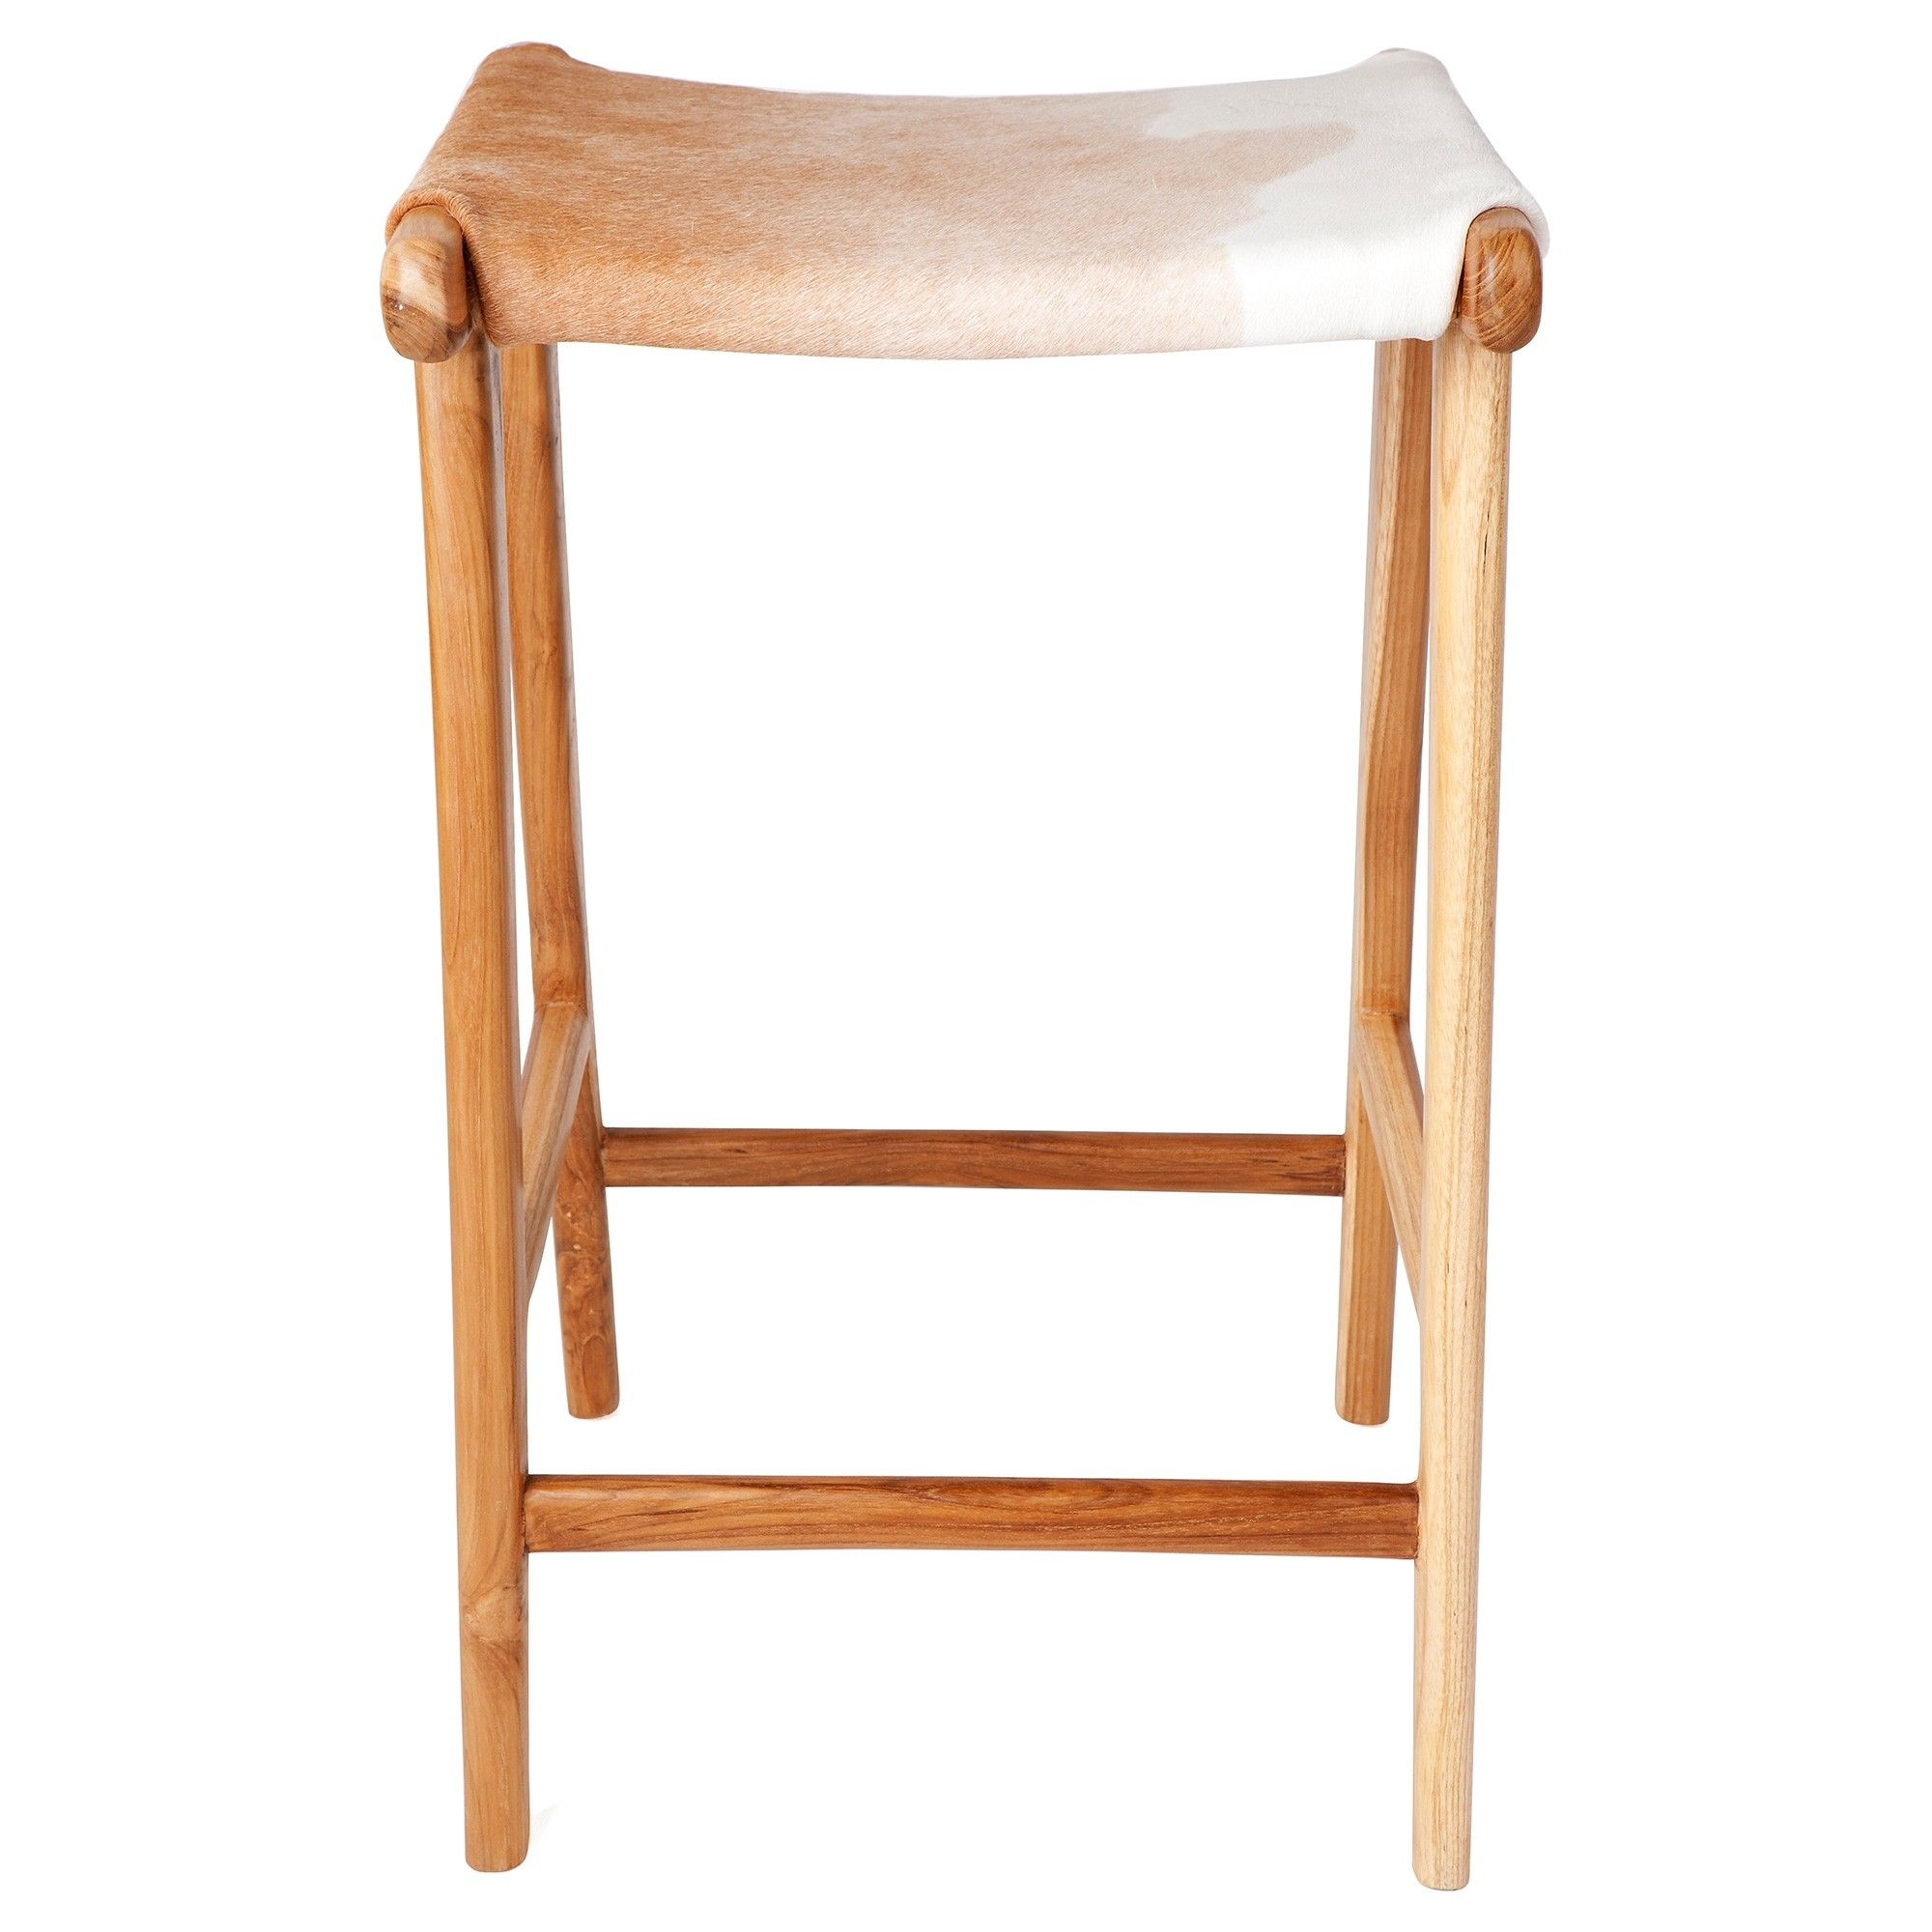 Malta Solid Teak Timber Counter Stool with Cowhide Seat, Brown/White ...